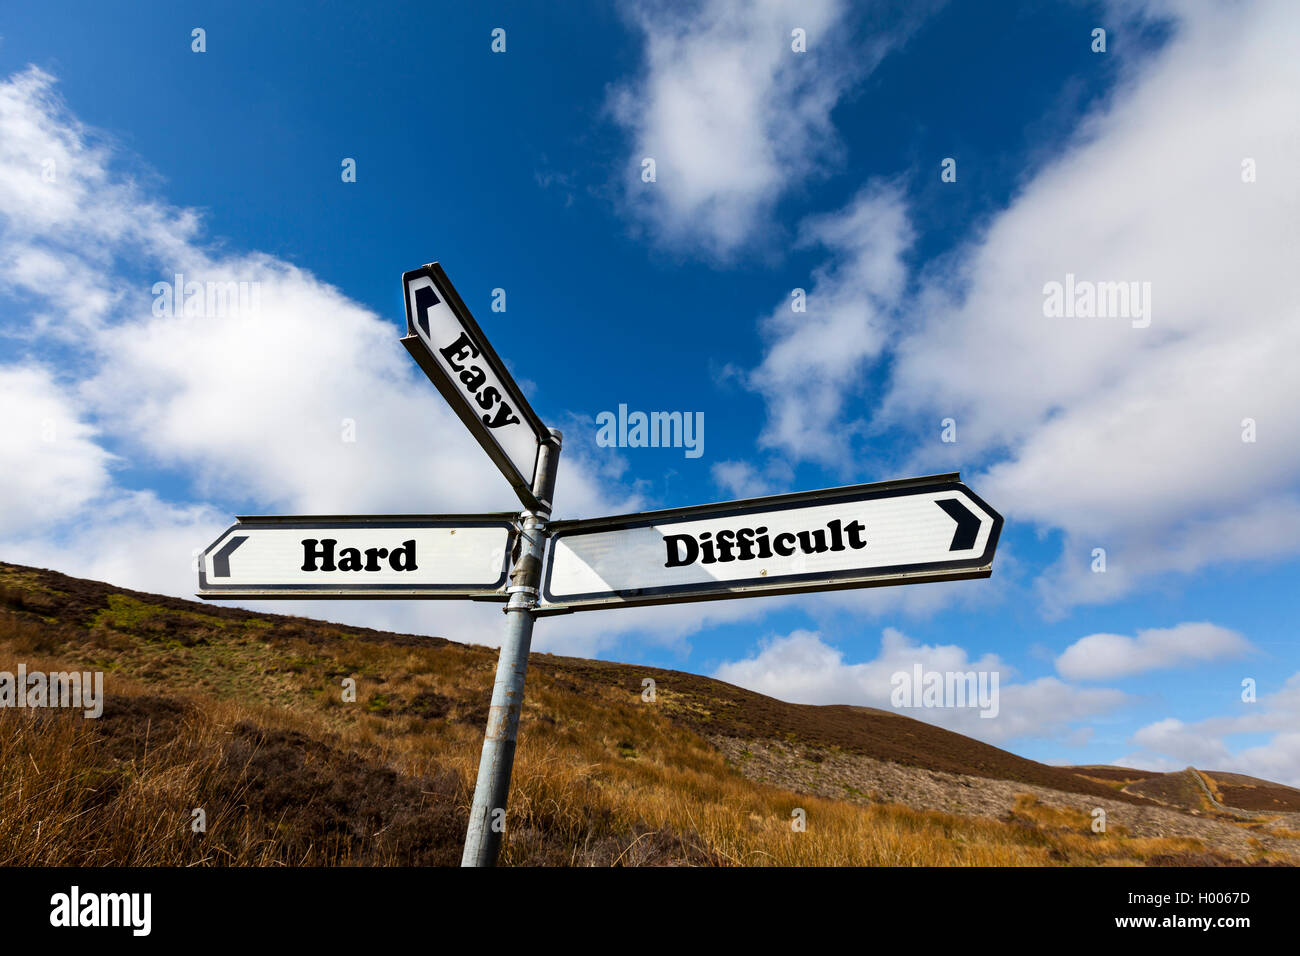 Easy hard difficult concept road sign choice choose options option life direction future way directions concepts - Stock Image